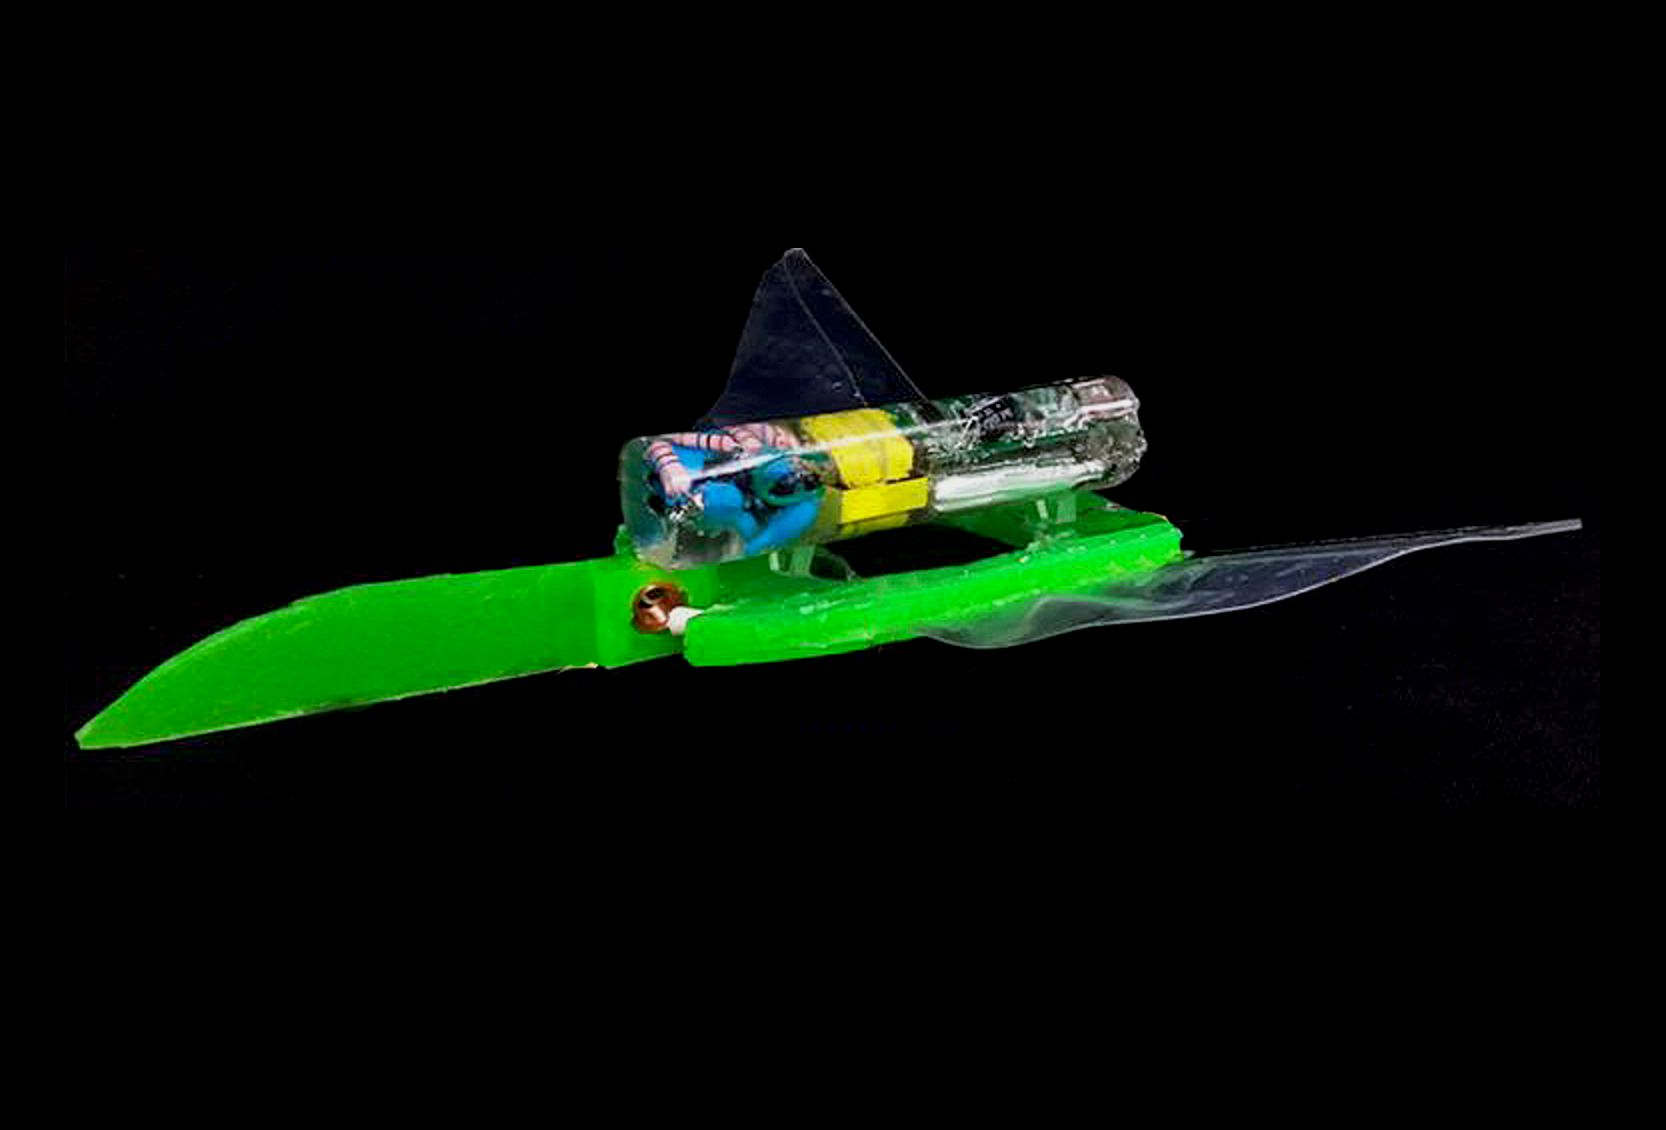 Soft Robotic Swimmer Is Fast, Resilient and Electric Shock-Free